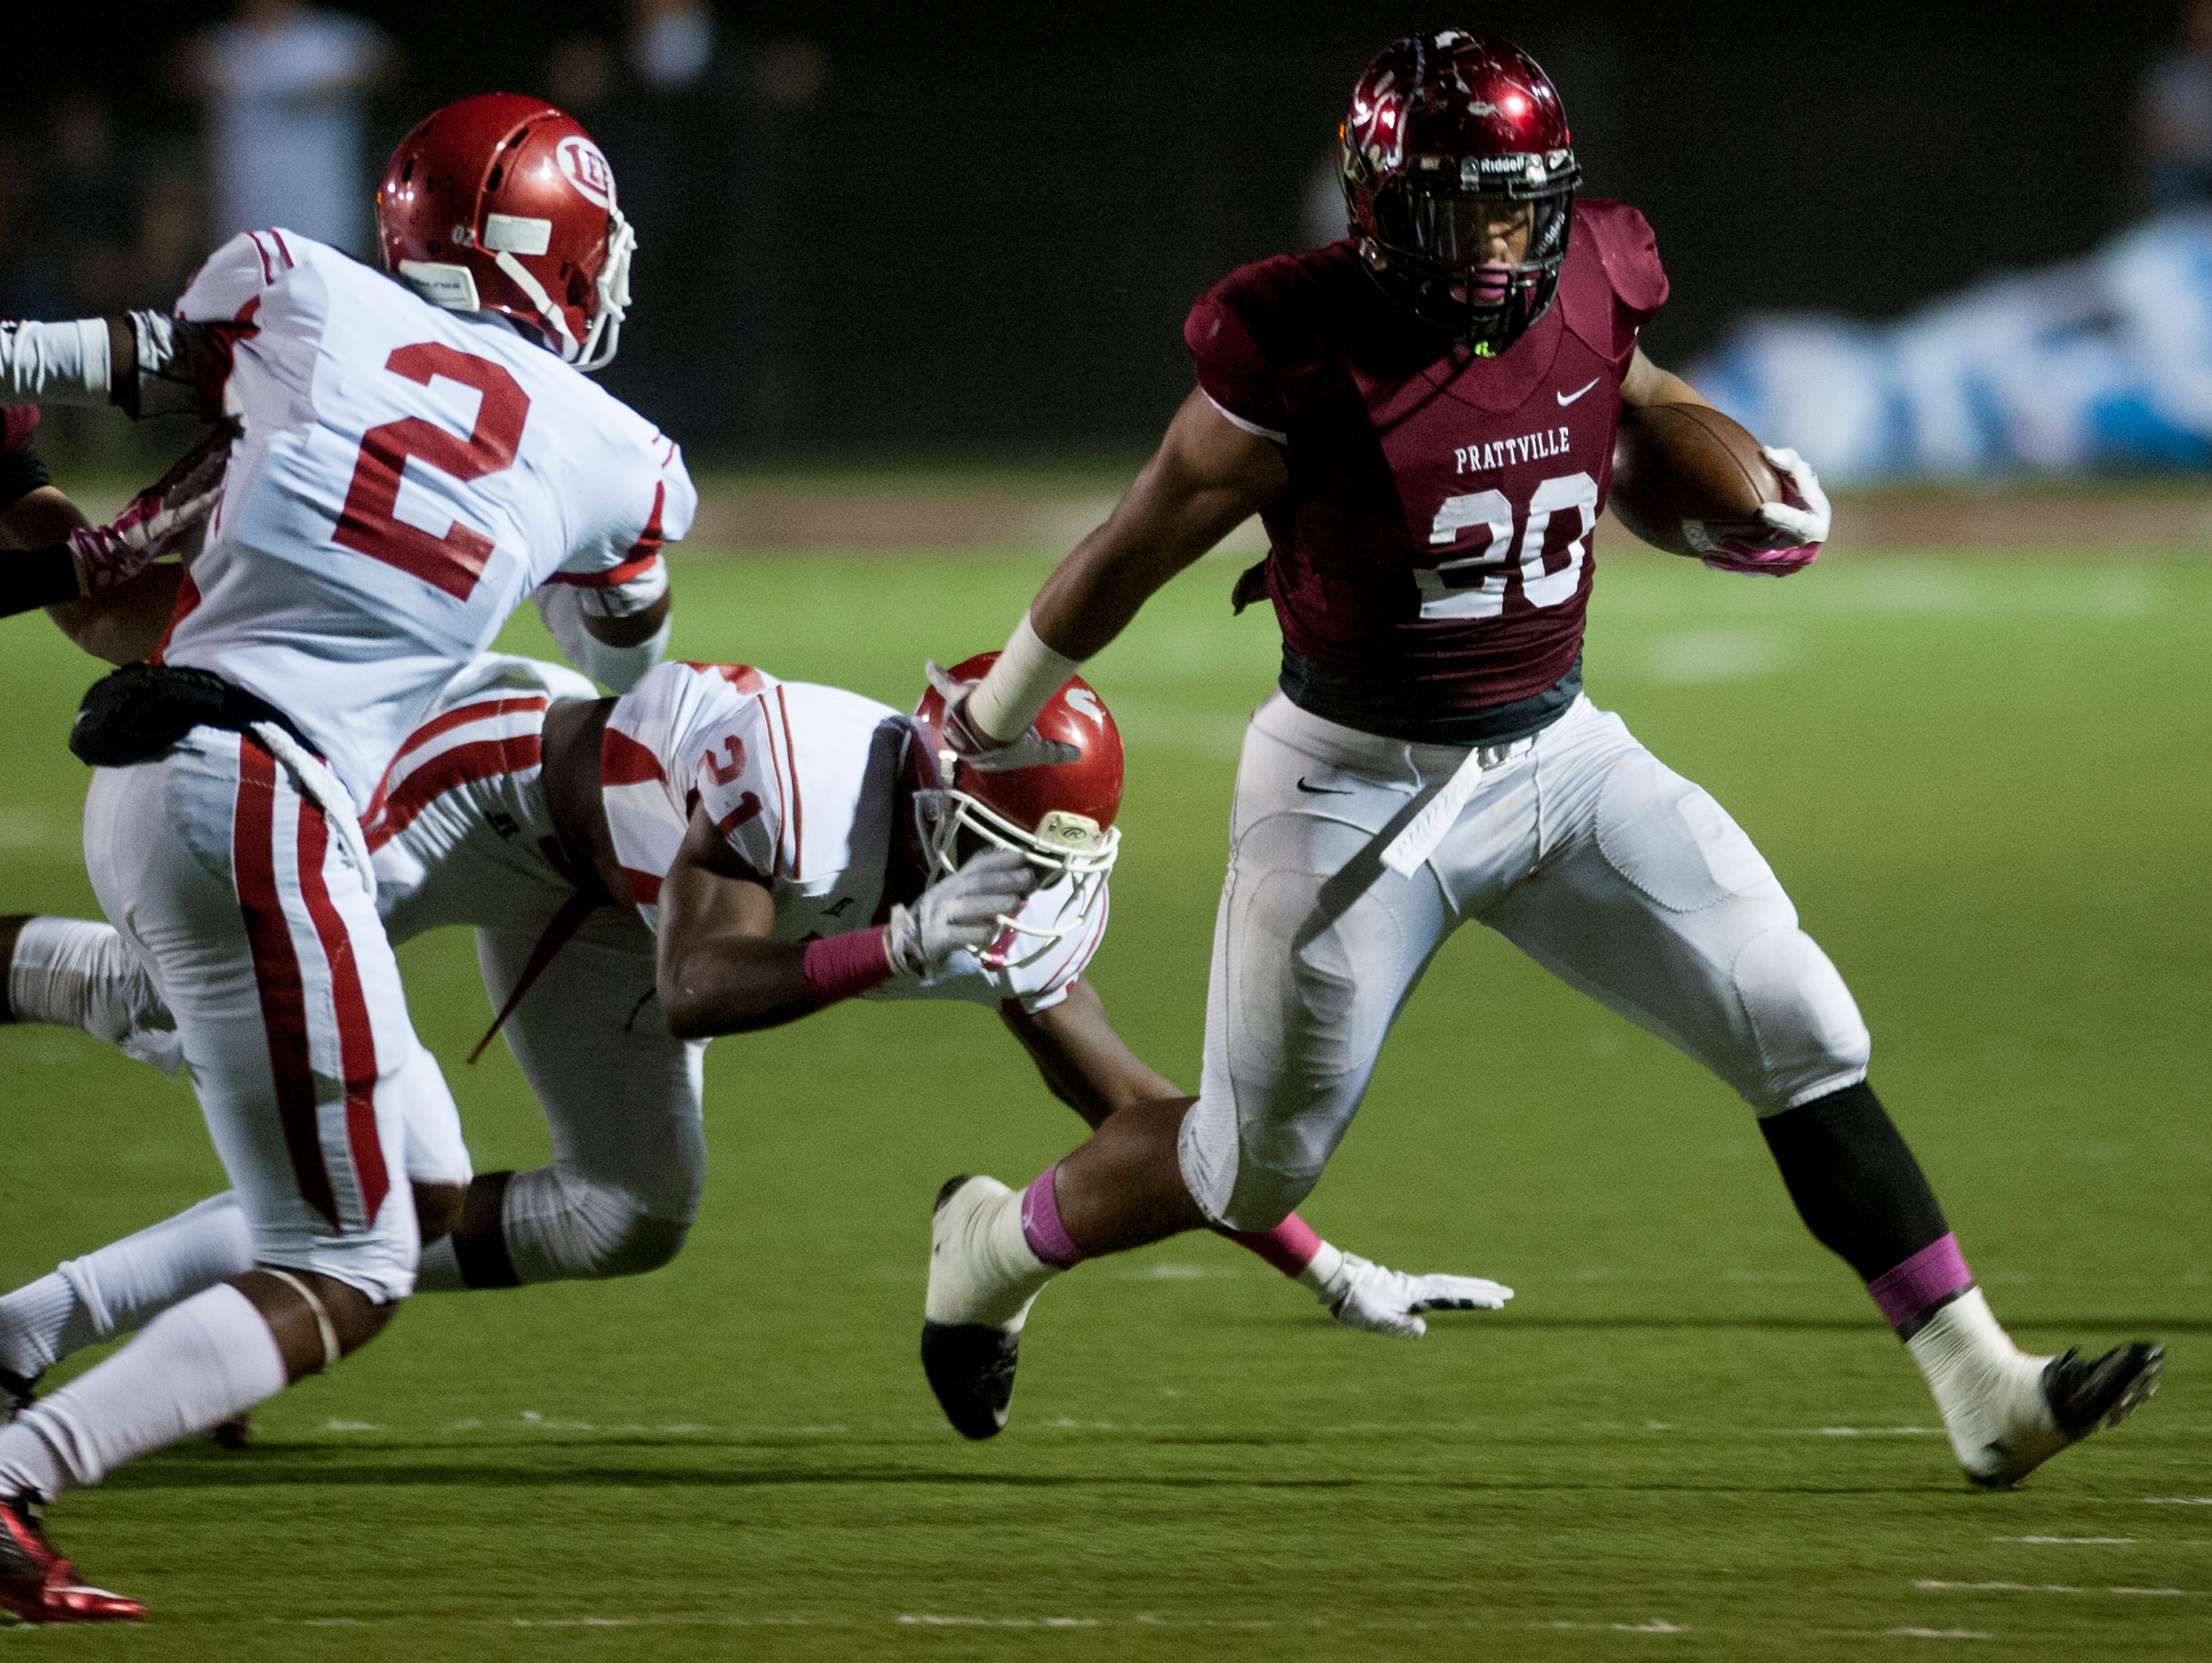 Prattville's Kingston Davis carries against Lee at Stanley Jensen Stadium in Prattville, Ala. on Friday October 23, 2015.